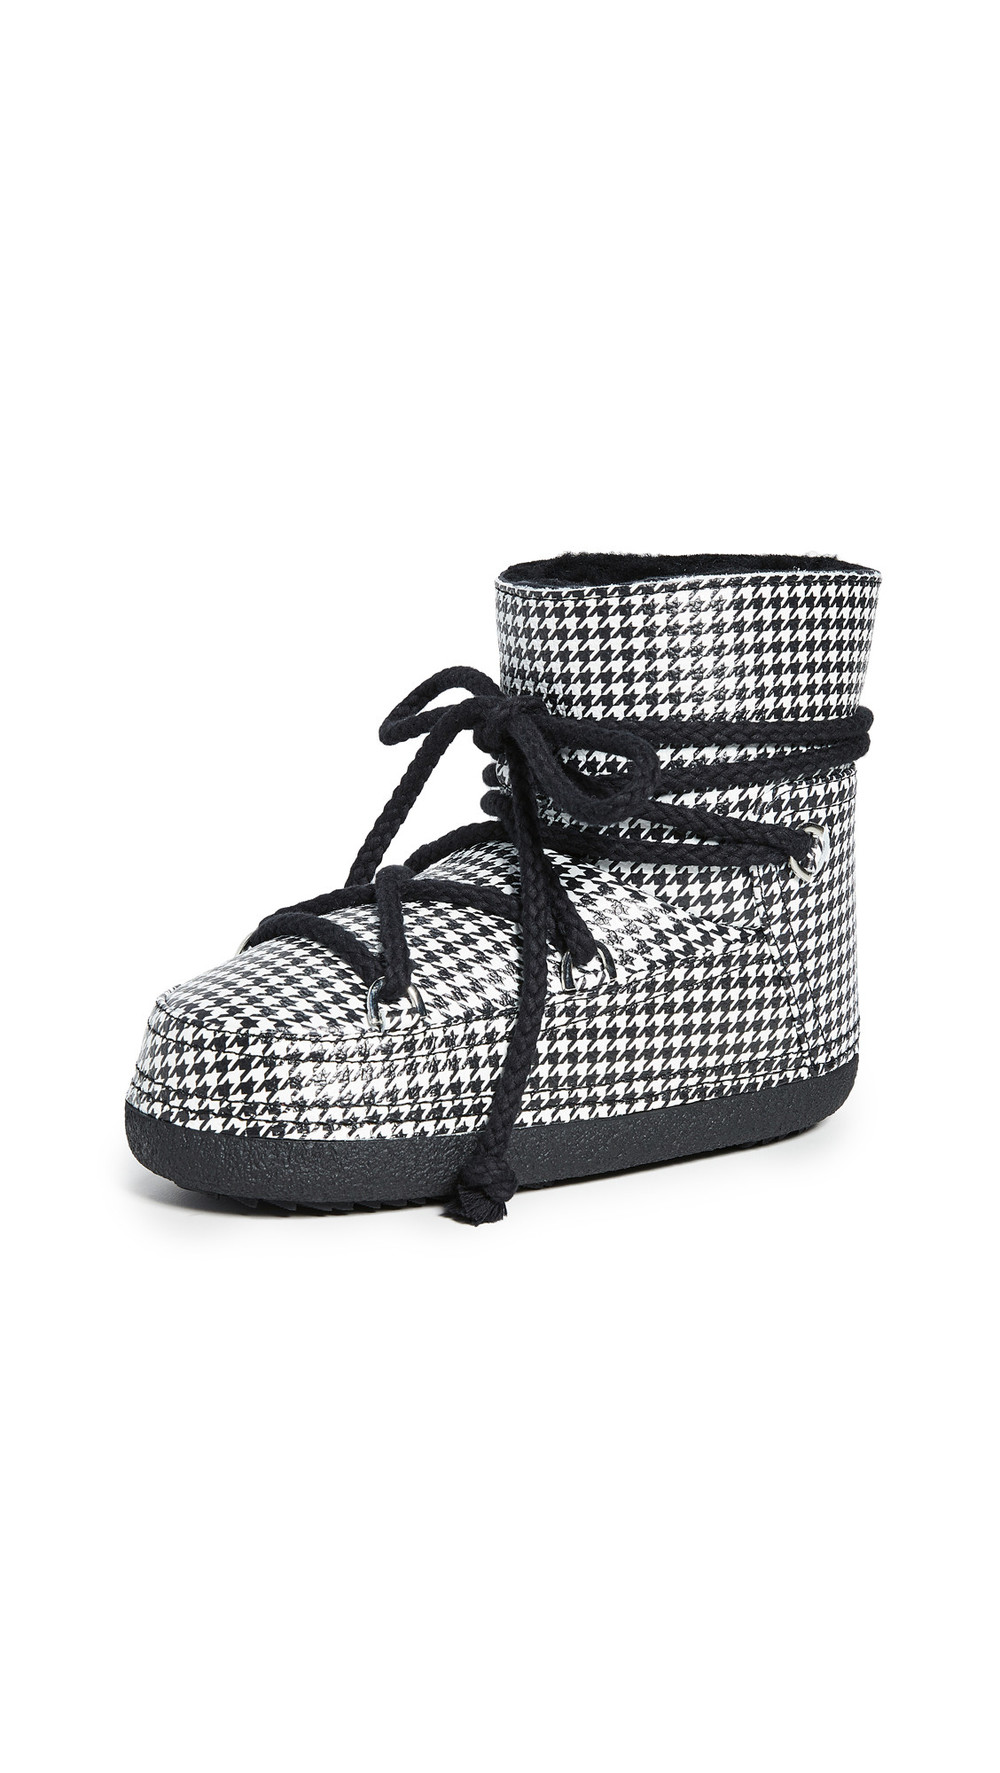 Inuikii Dog Tooth Shearling Boots in black / white